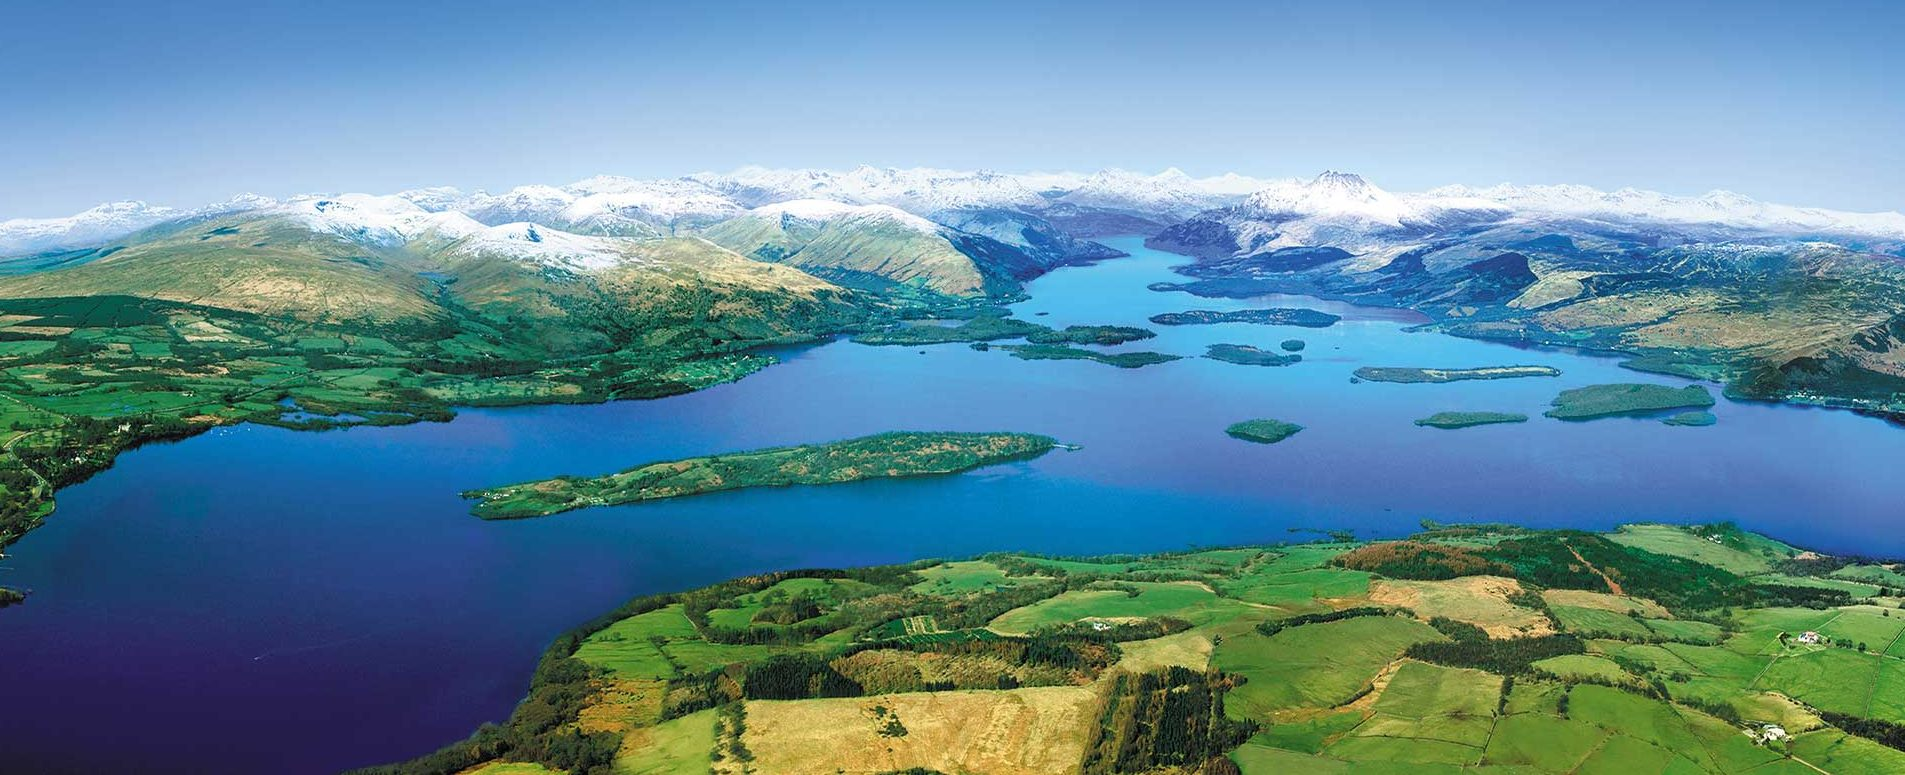 Loch lomond the big canoe funding neuro for The big canoe